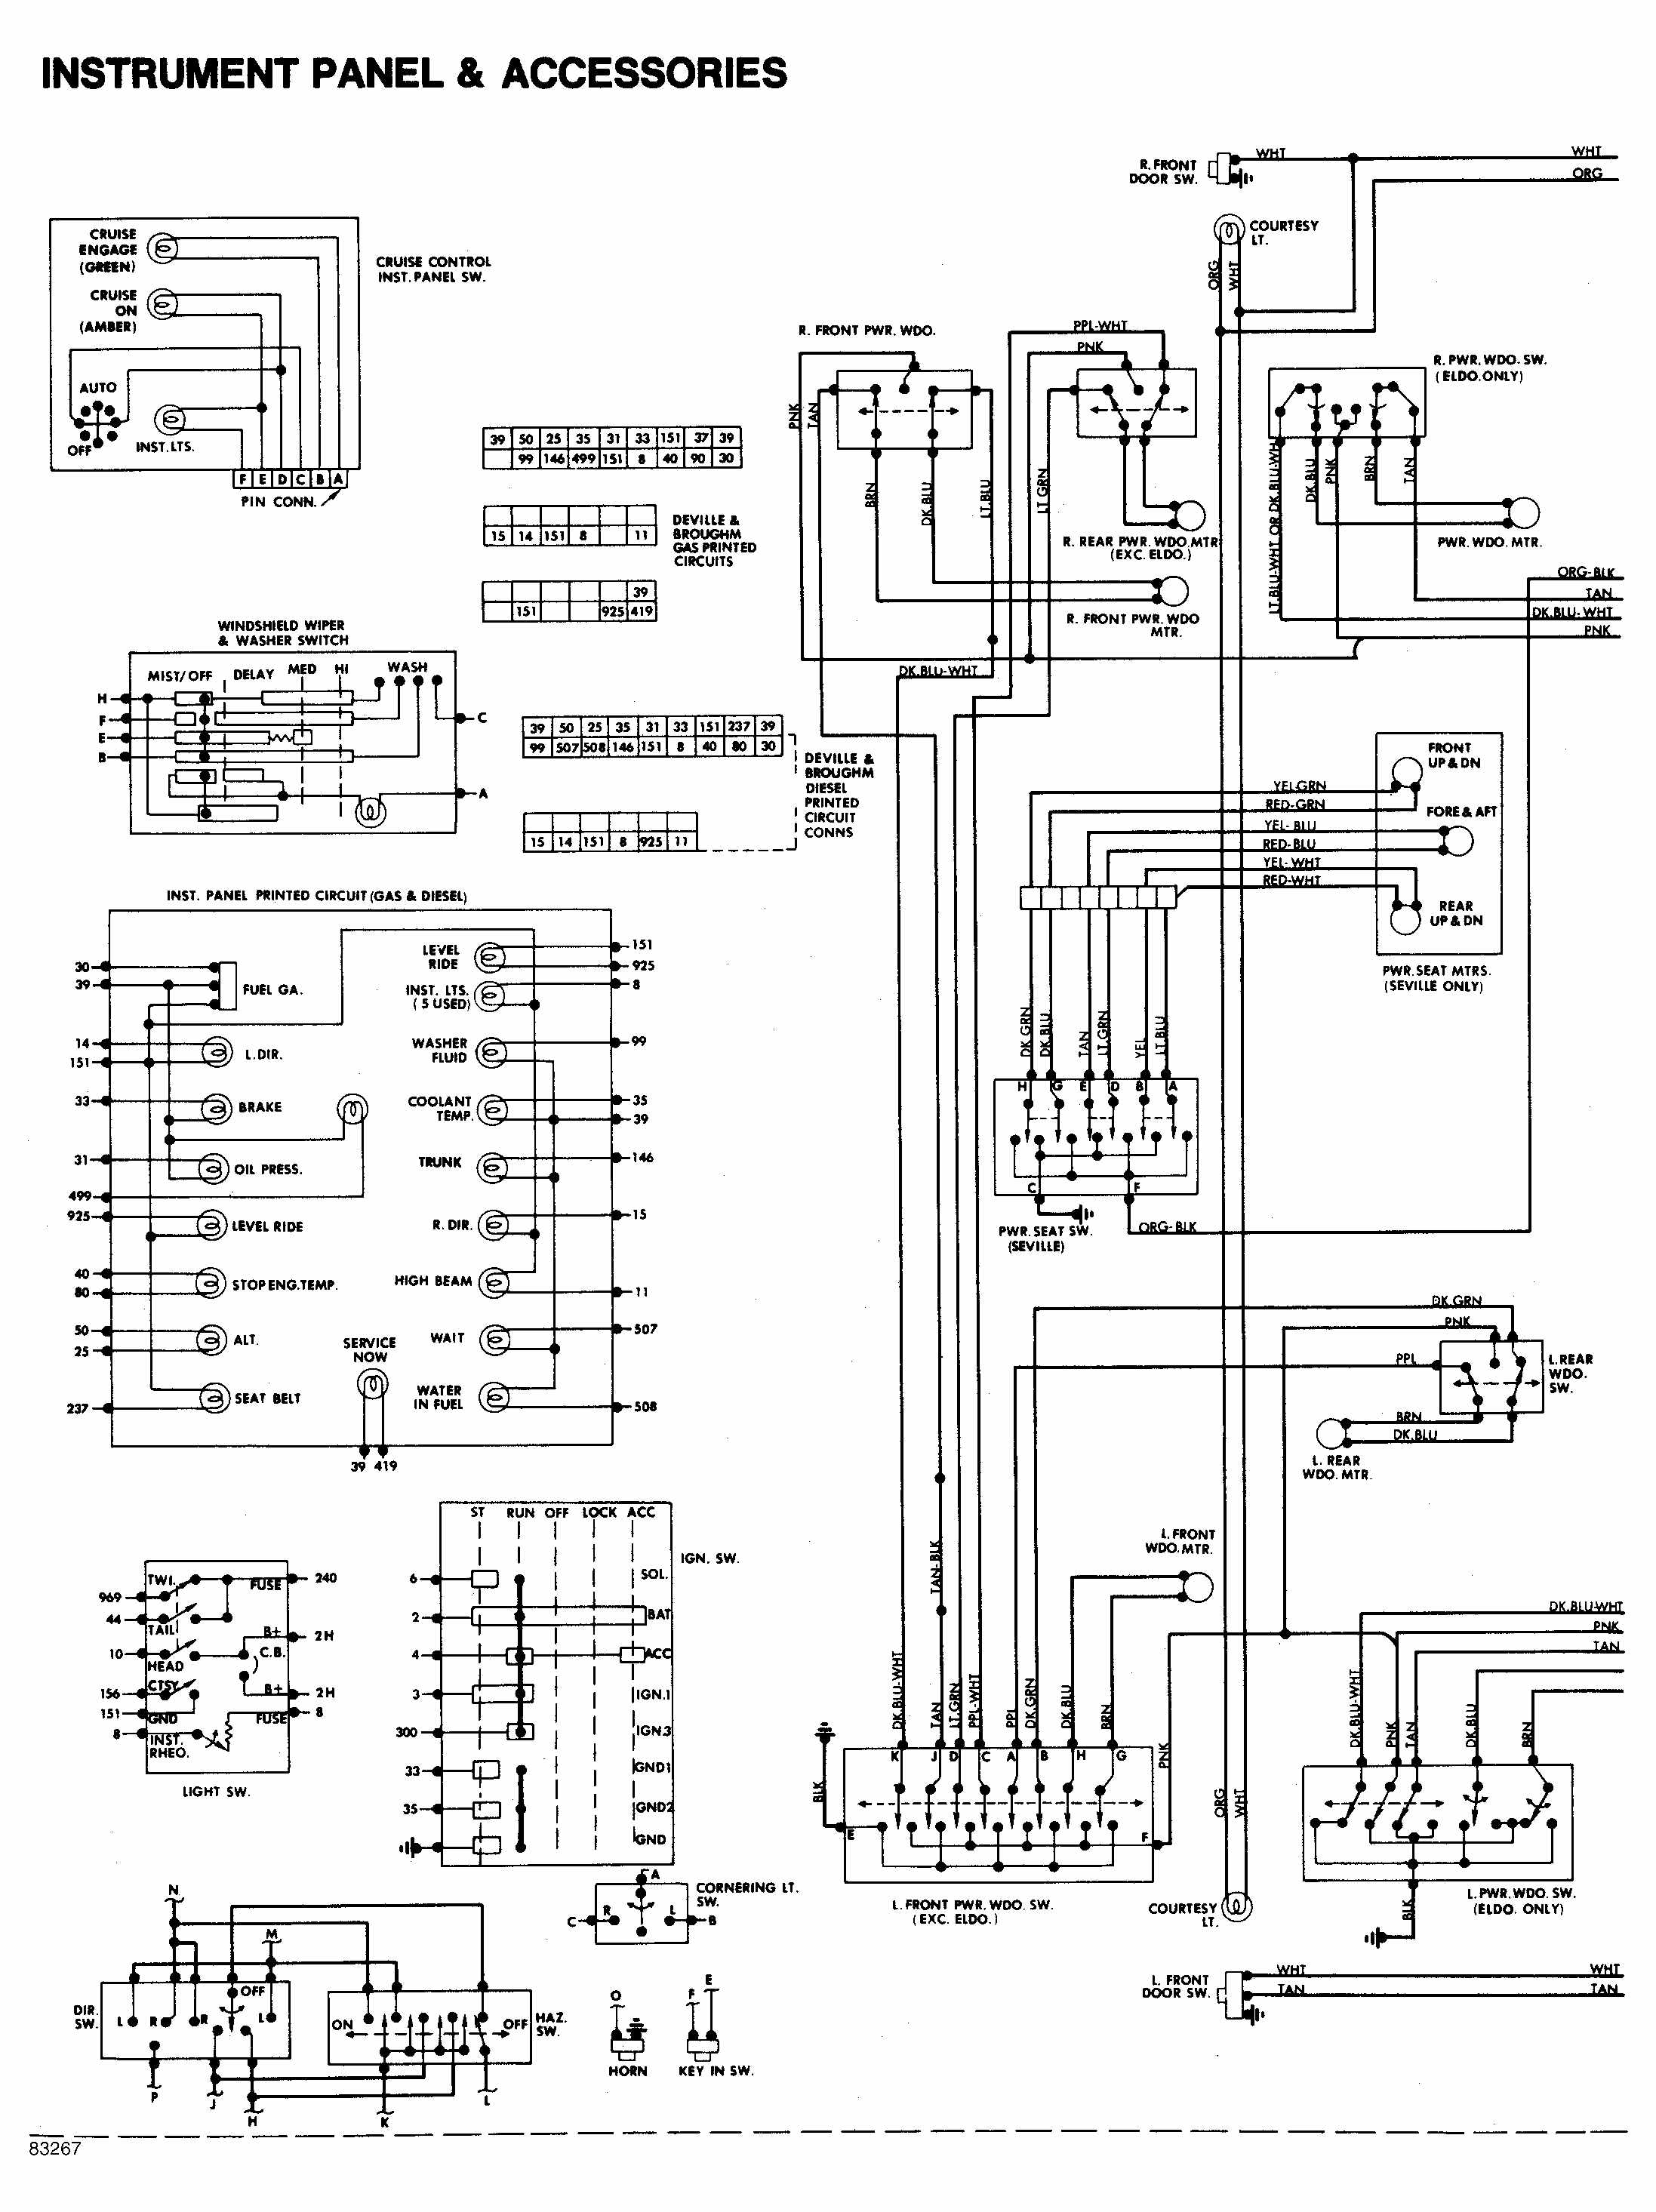 bose amp wiring diagram 2007 chevy wiring diagram database. Black Bedroom Furniture Sets. Home Design Ideas